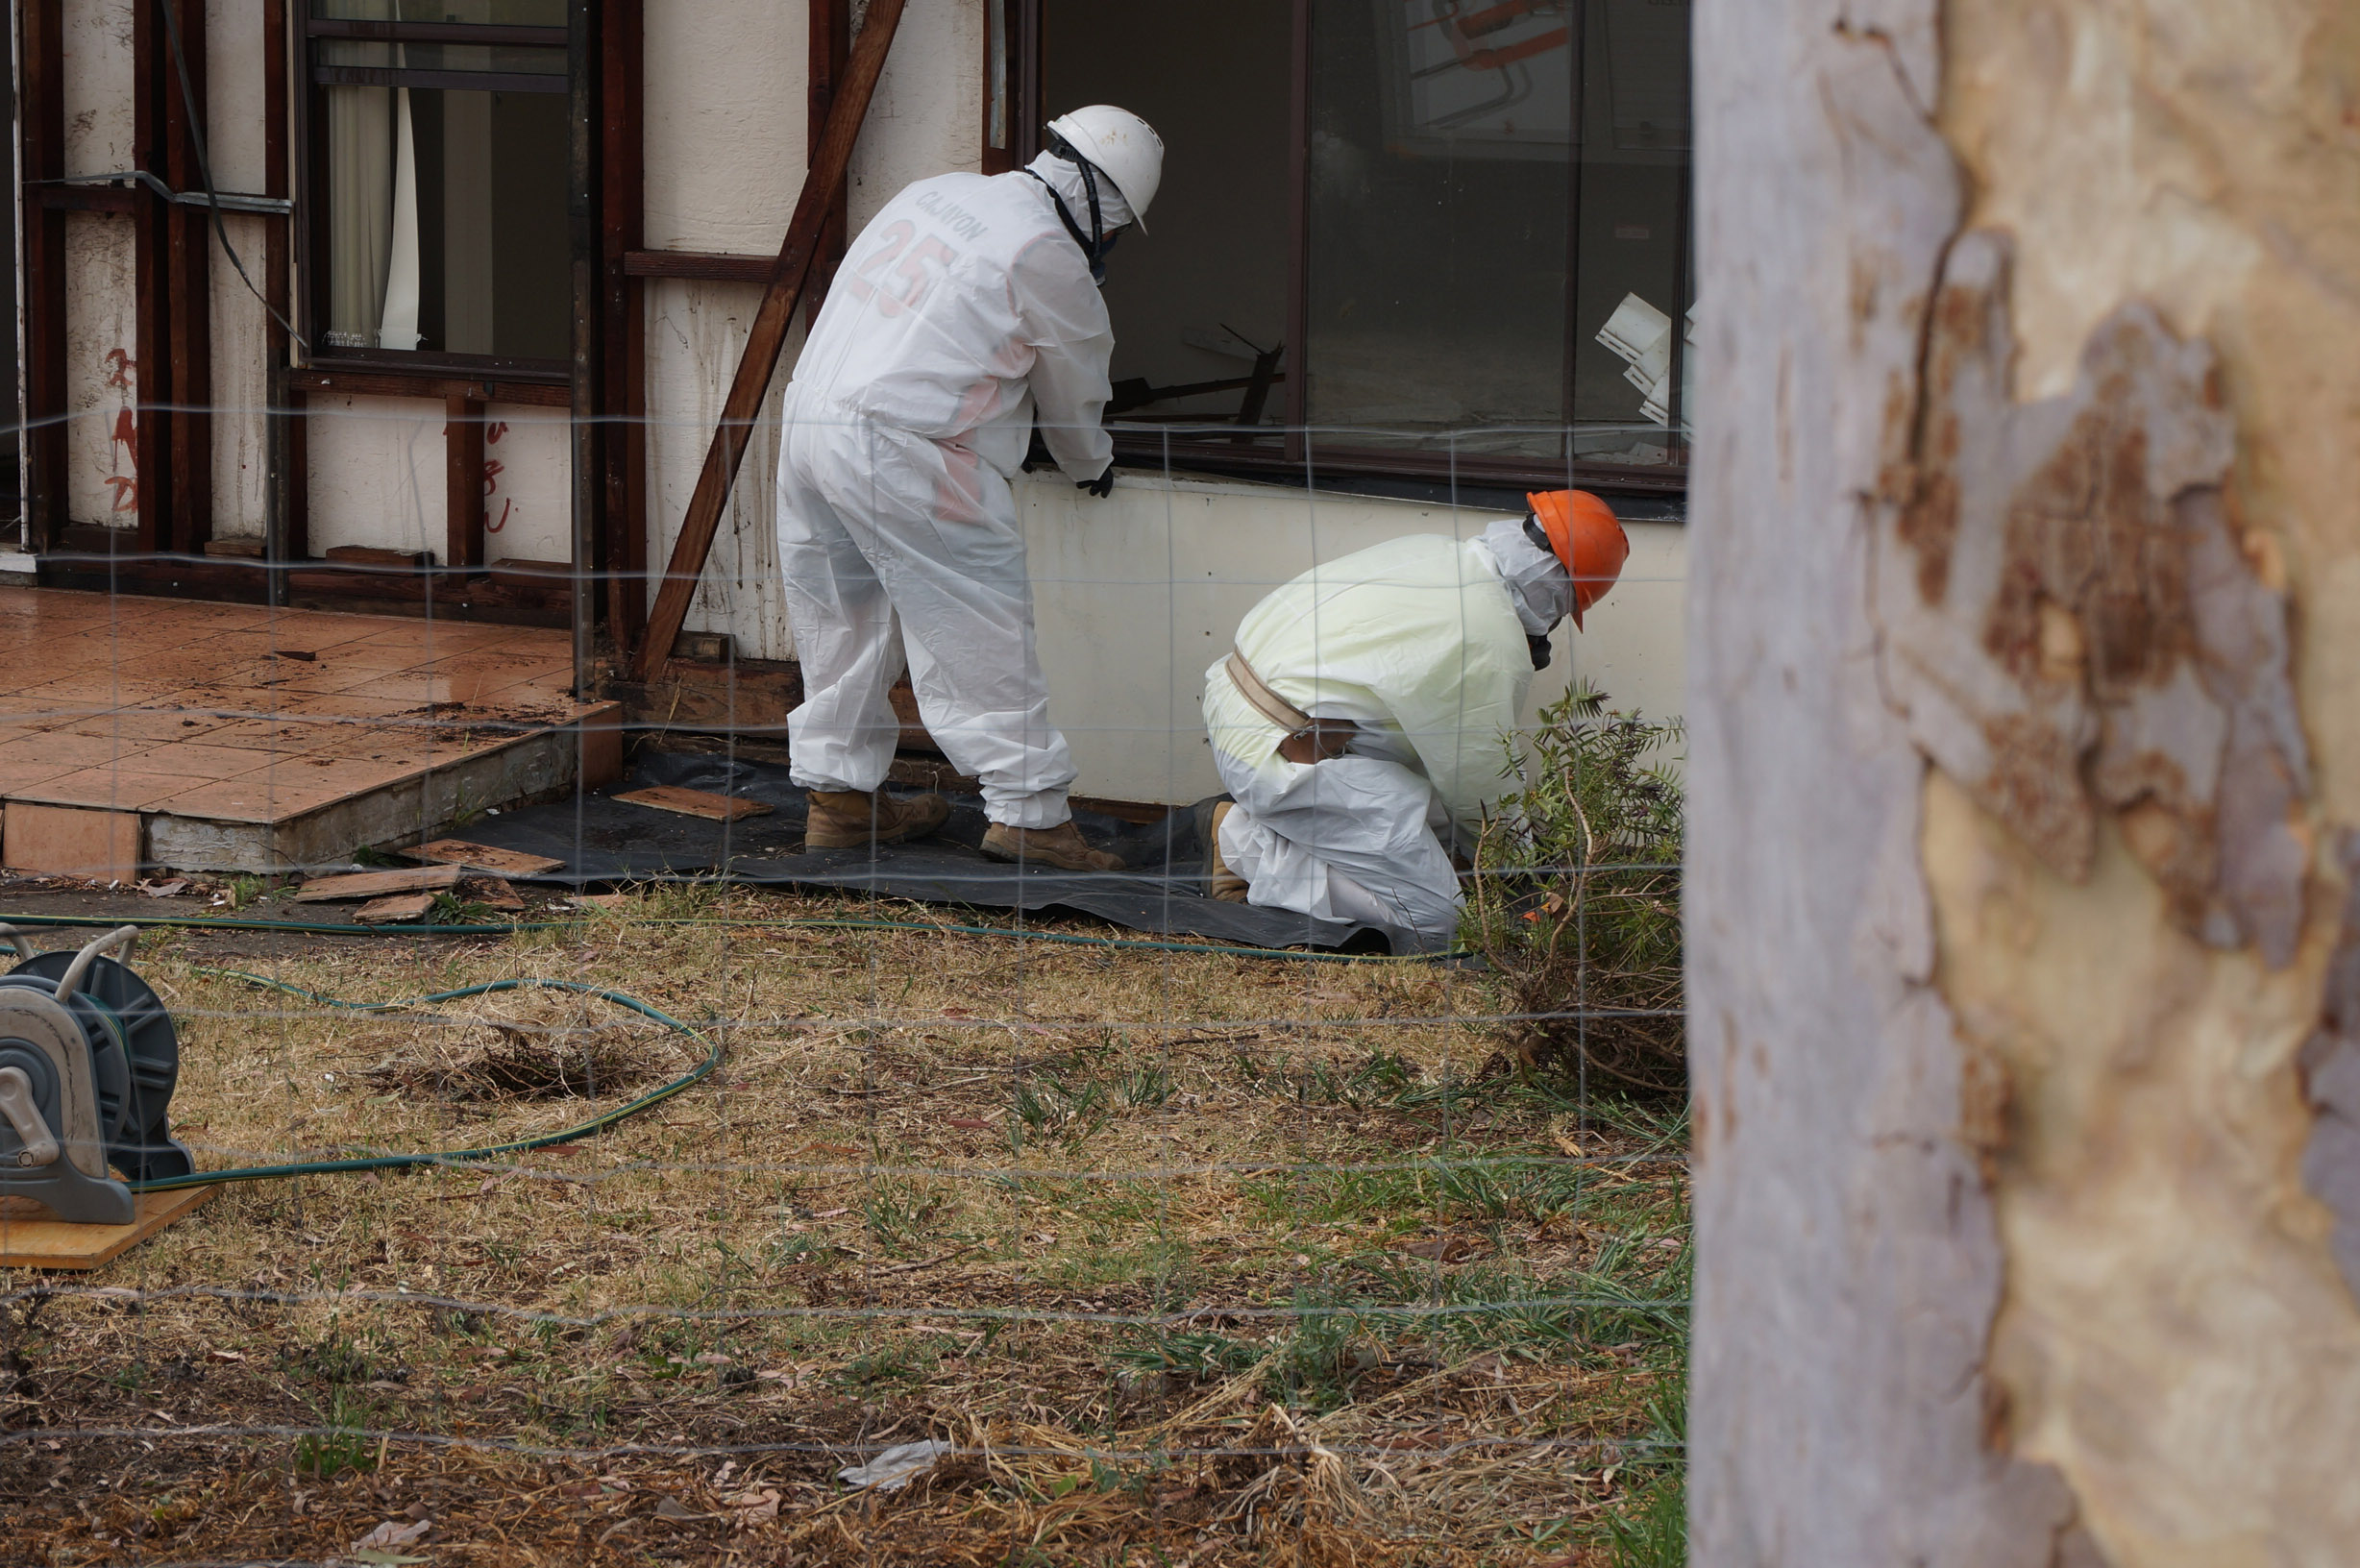 Our asbestos removal labourers in action, removing asbestos sheeting from an asbestos clad home due for demolition.